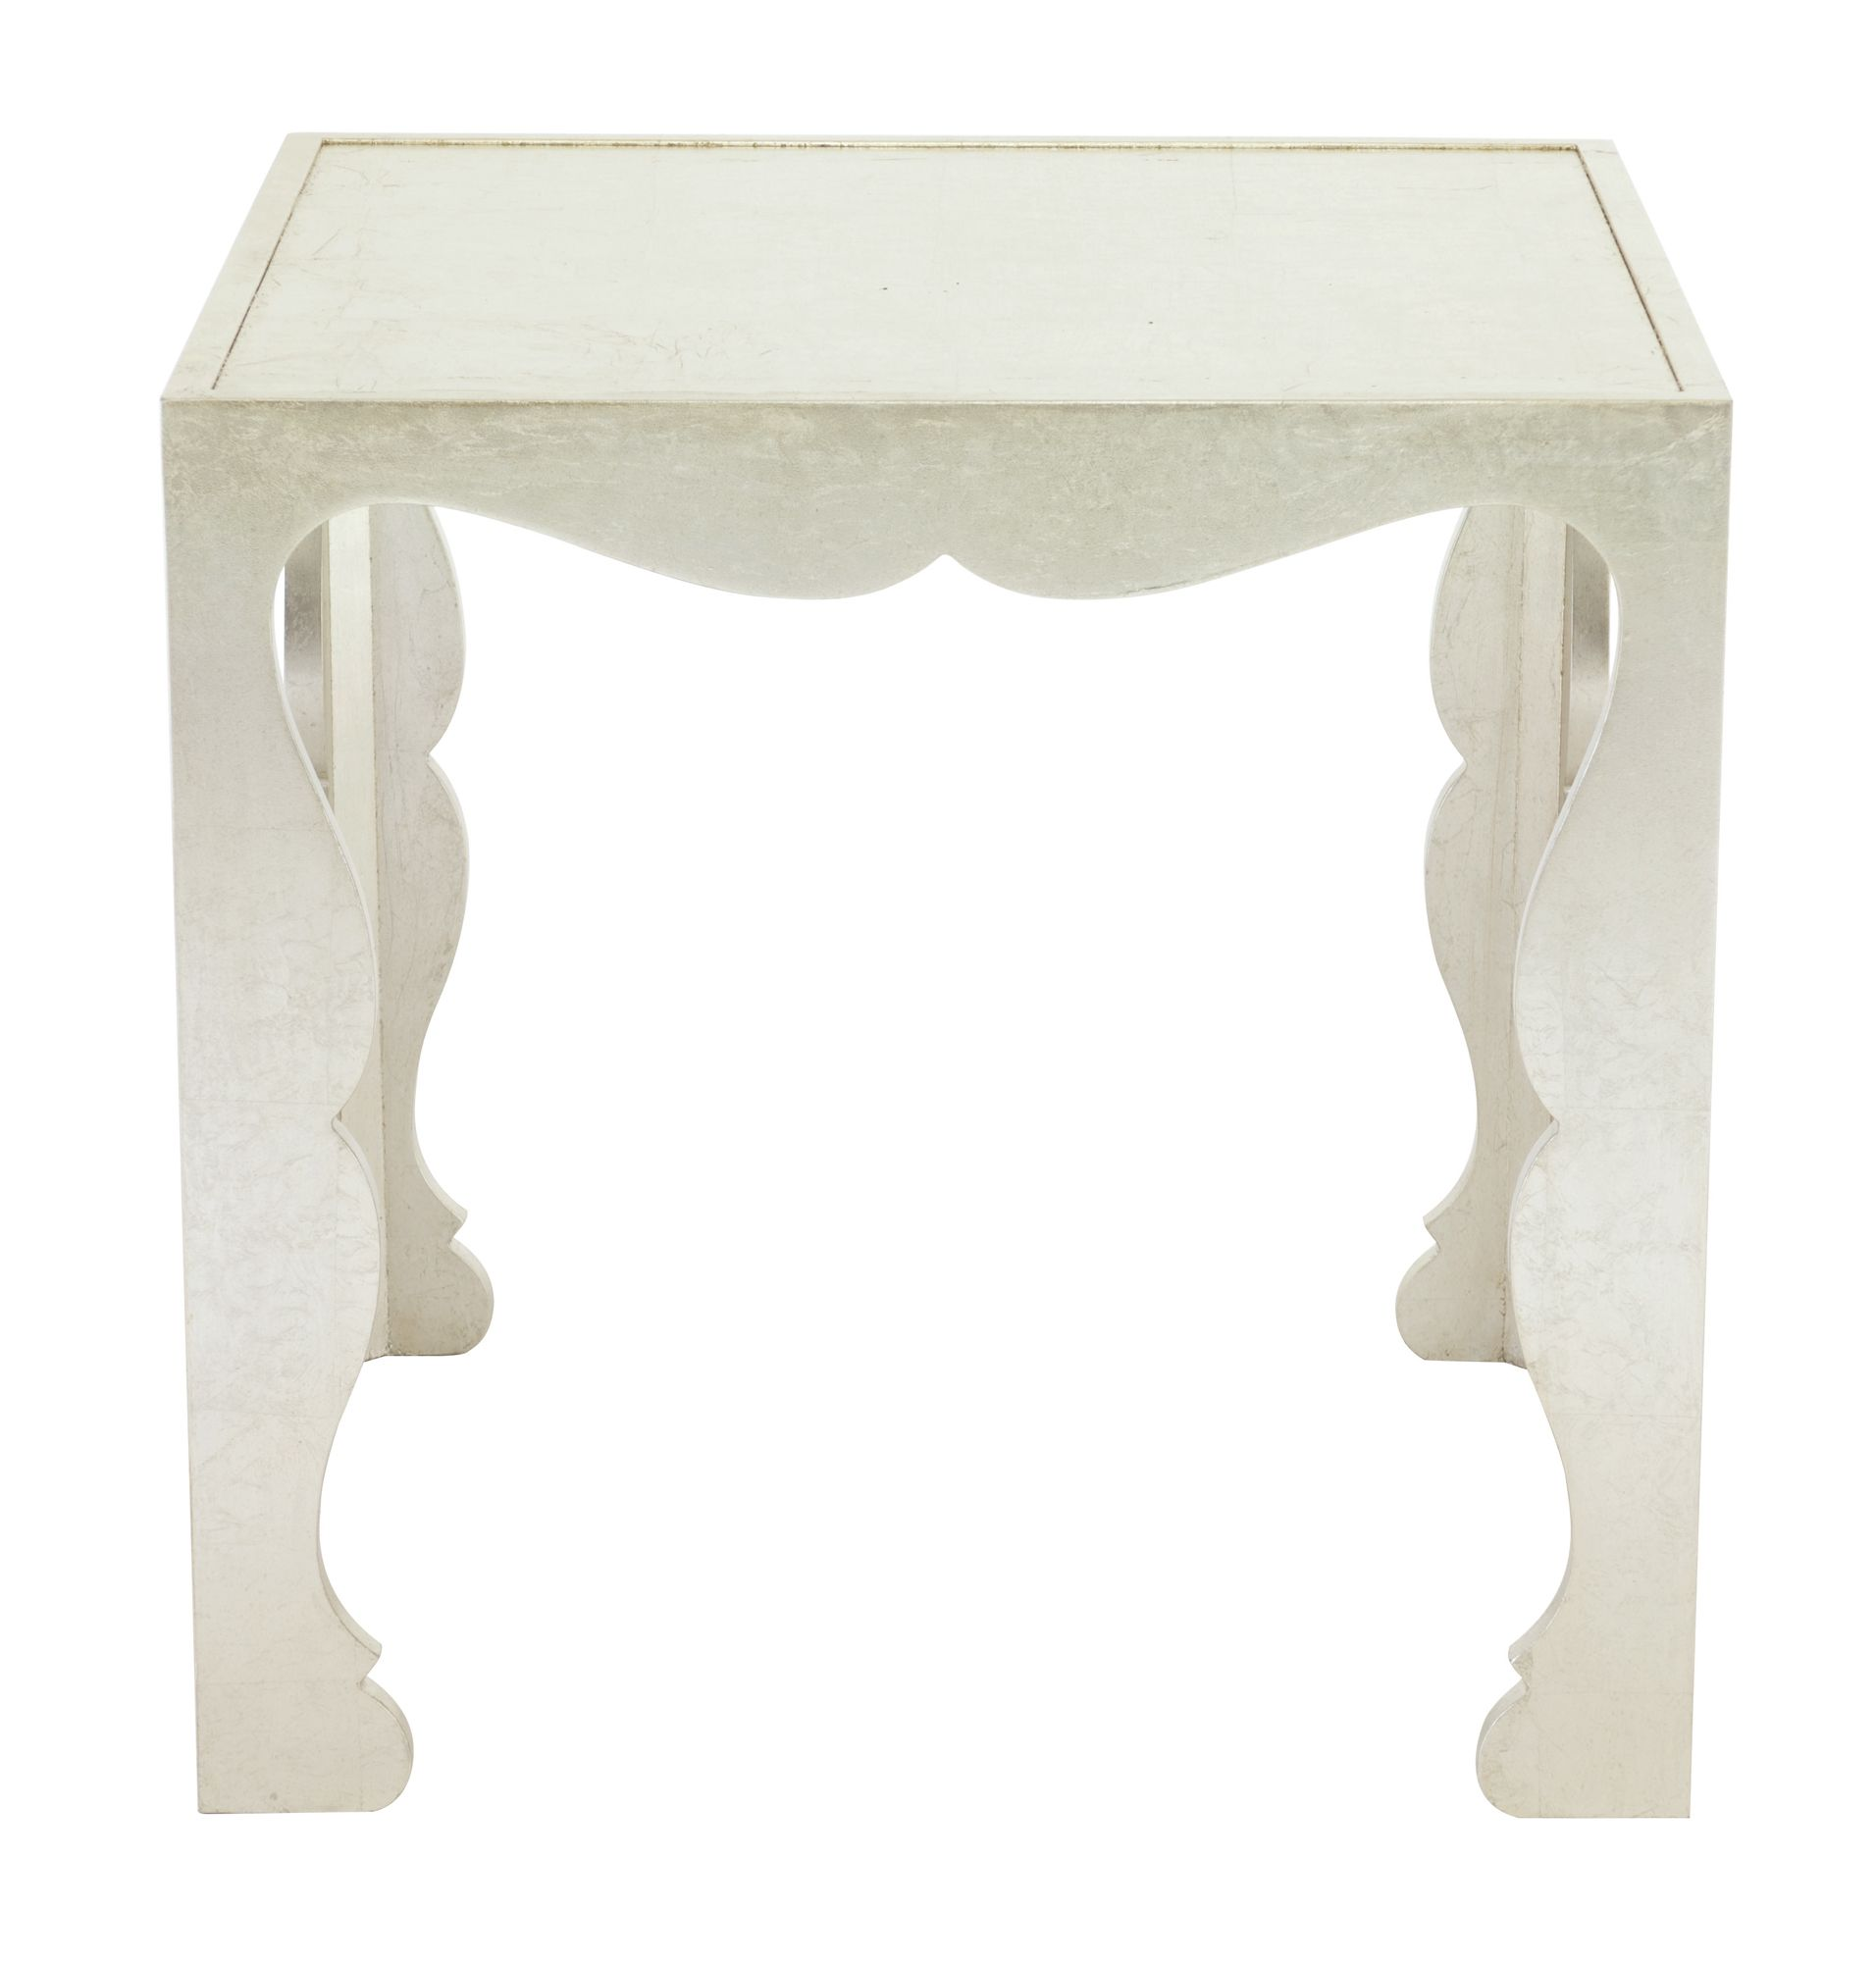 353 154 Savoy End Table Bernhardt W 20 D 26 H 25 Silver Leaf